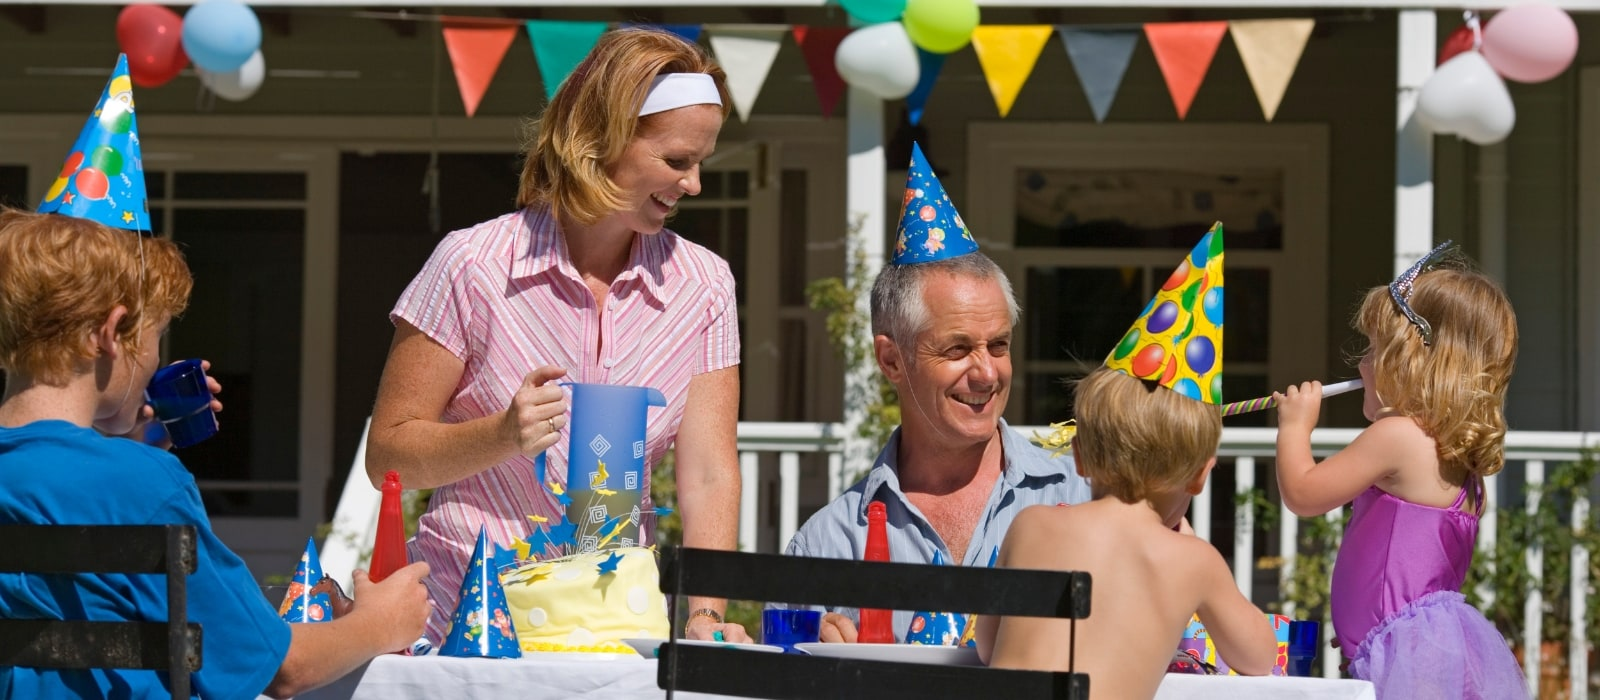 How to Plan a Surprise 50th Birthday Party